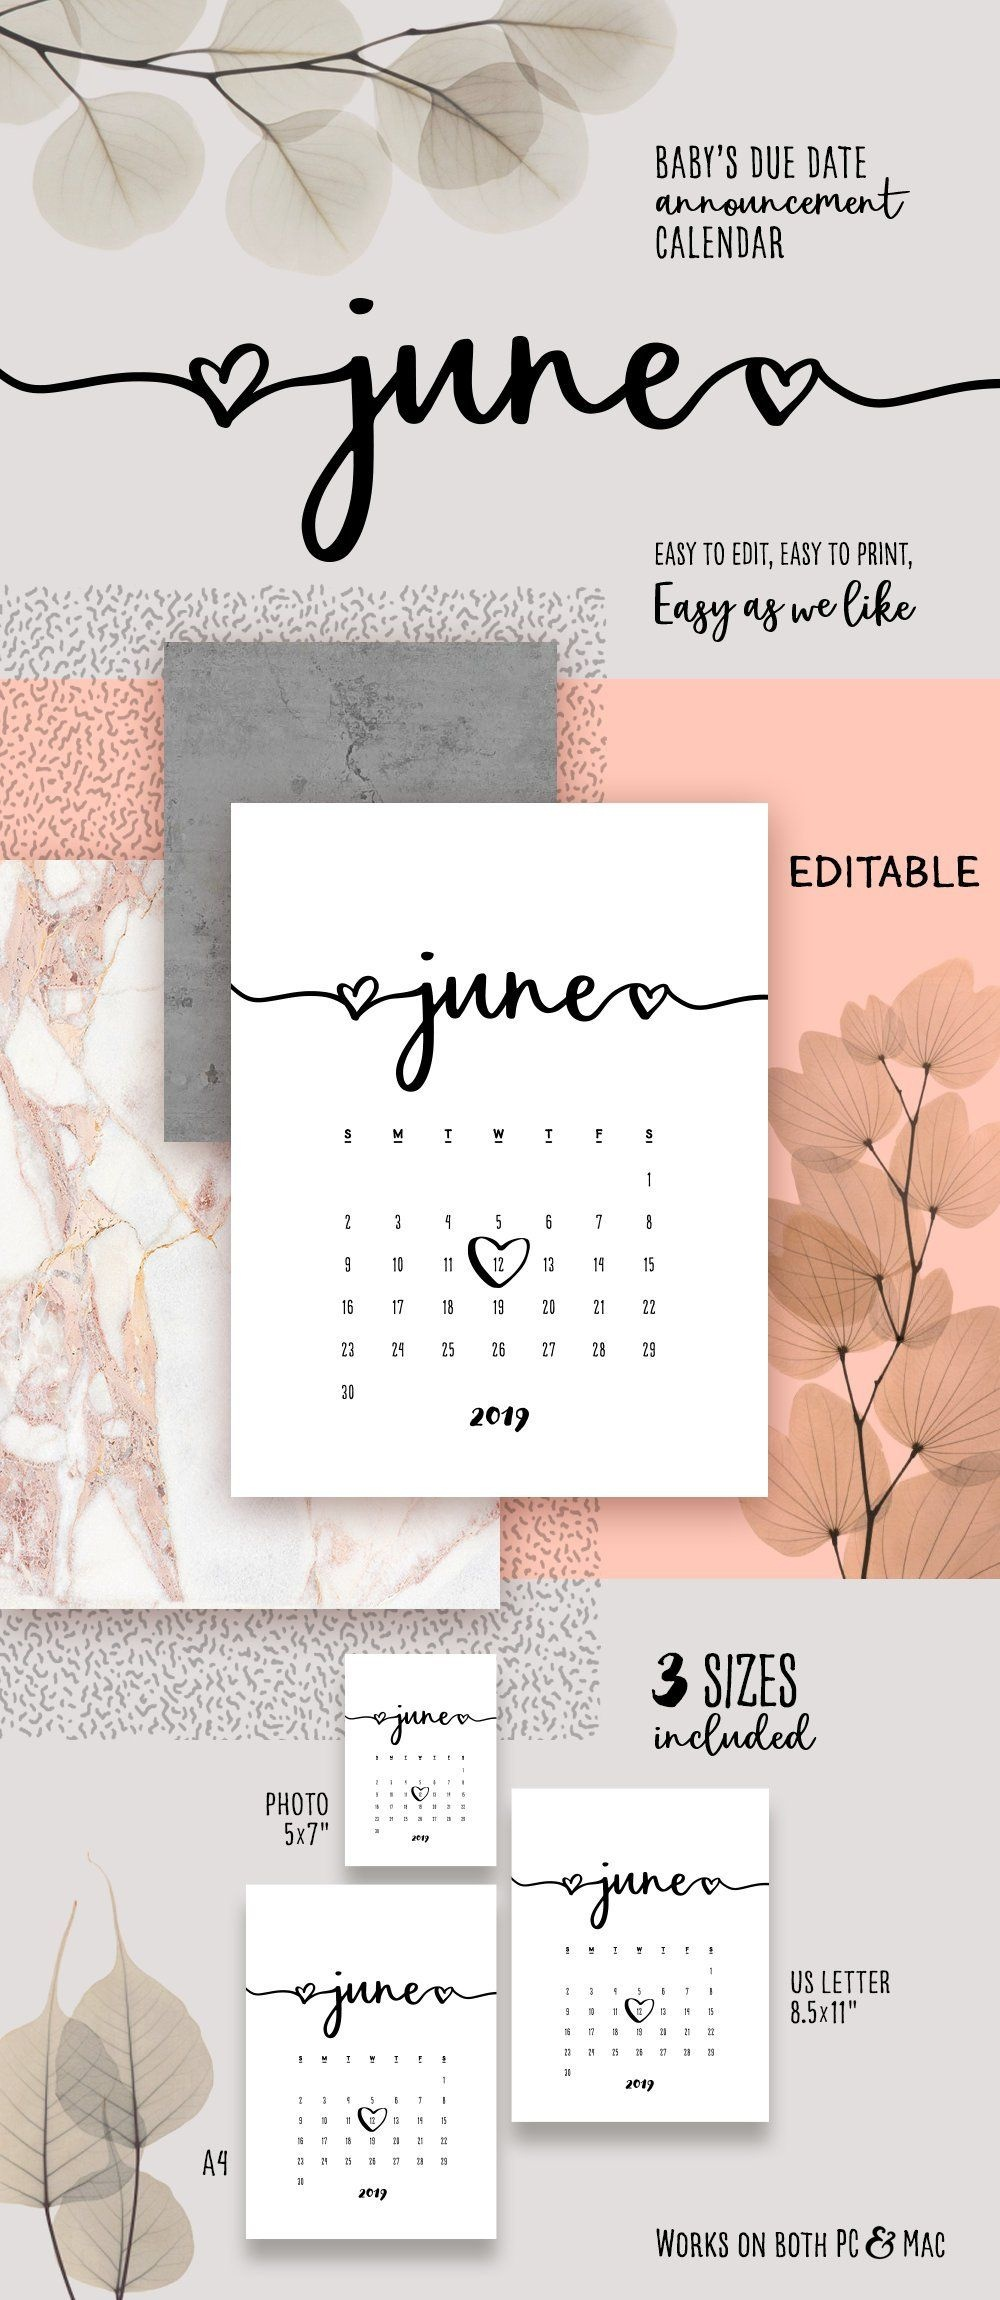 June 2019 Printable Pregnancy Calendar Template Lovely Baby Due Date - Free Printable Baby Announcement Templates